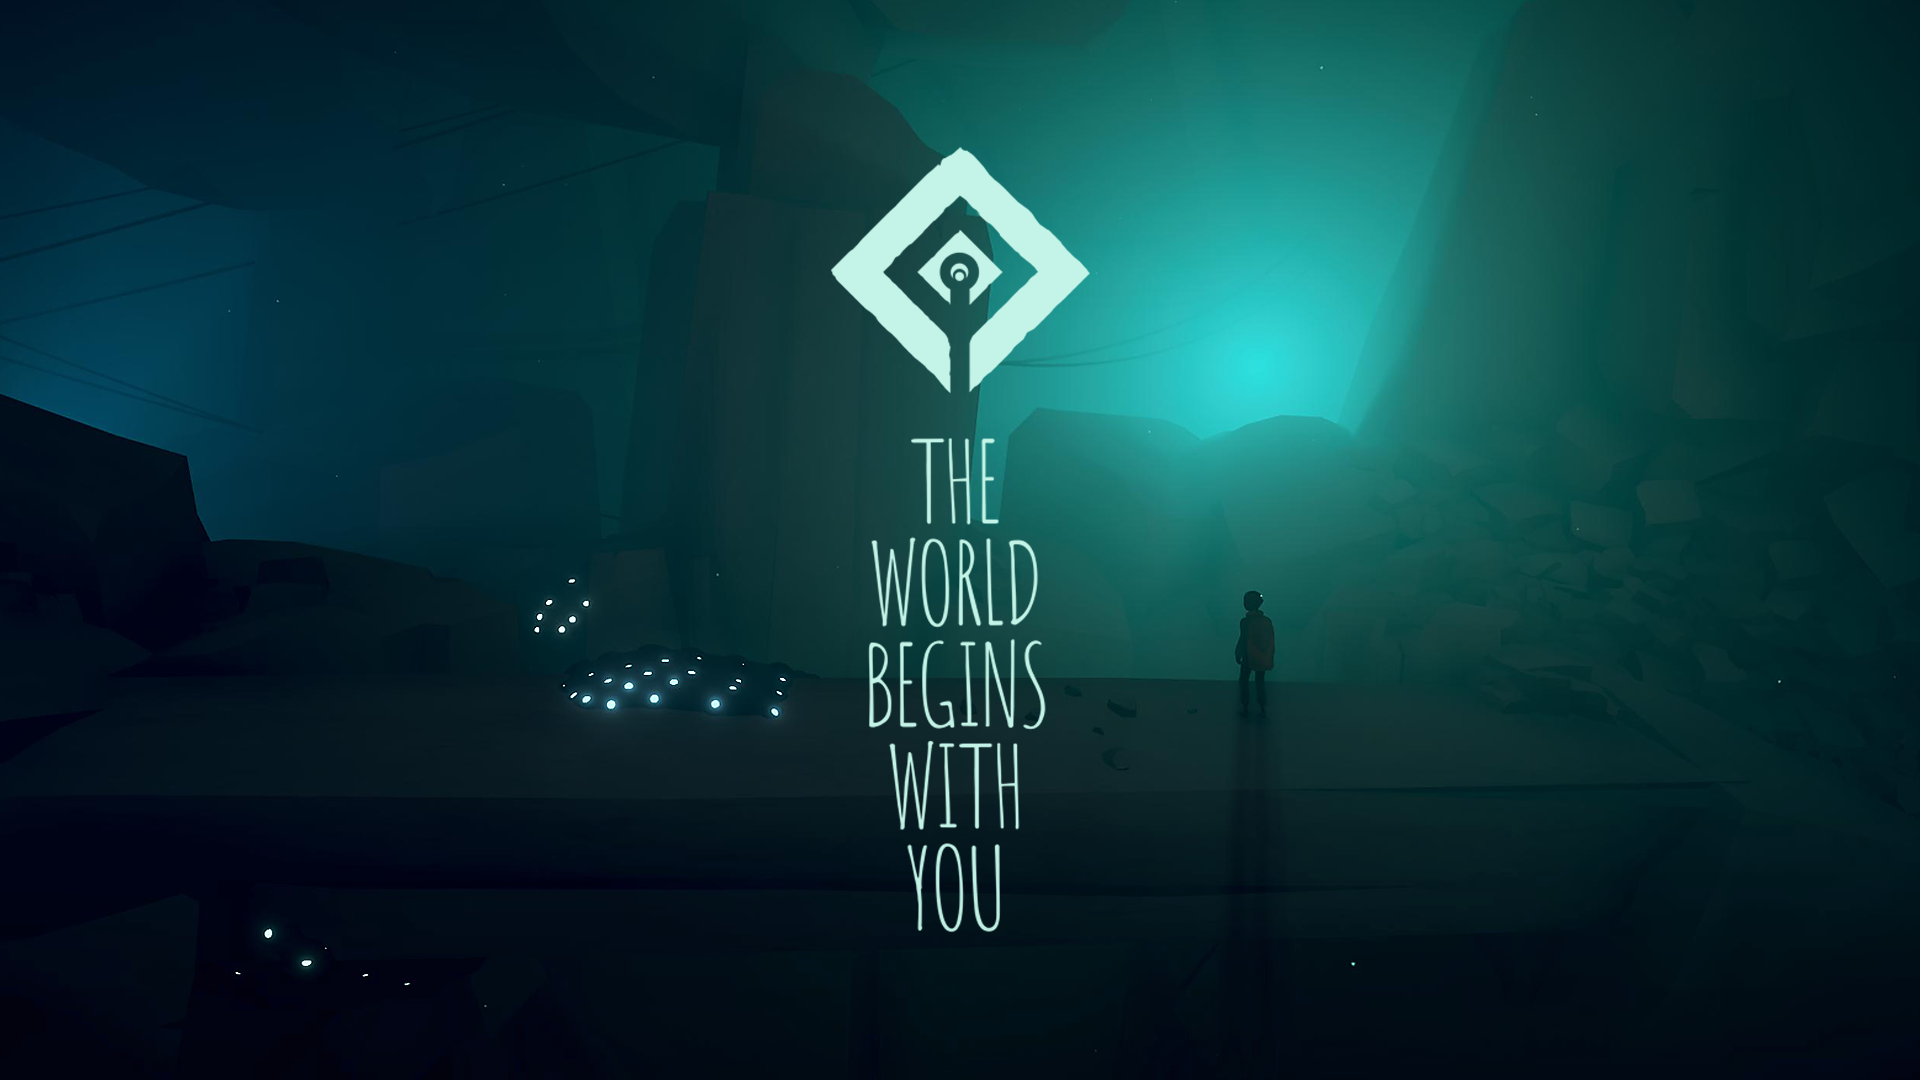 世界�哪汩_始(the world begins with you)游�蛎獍惭b版